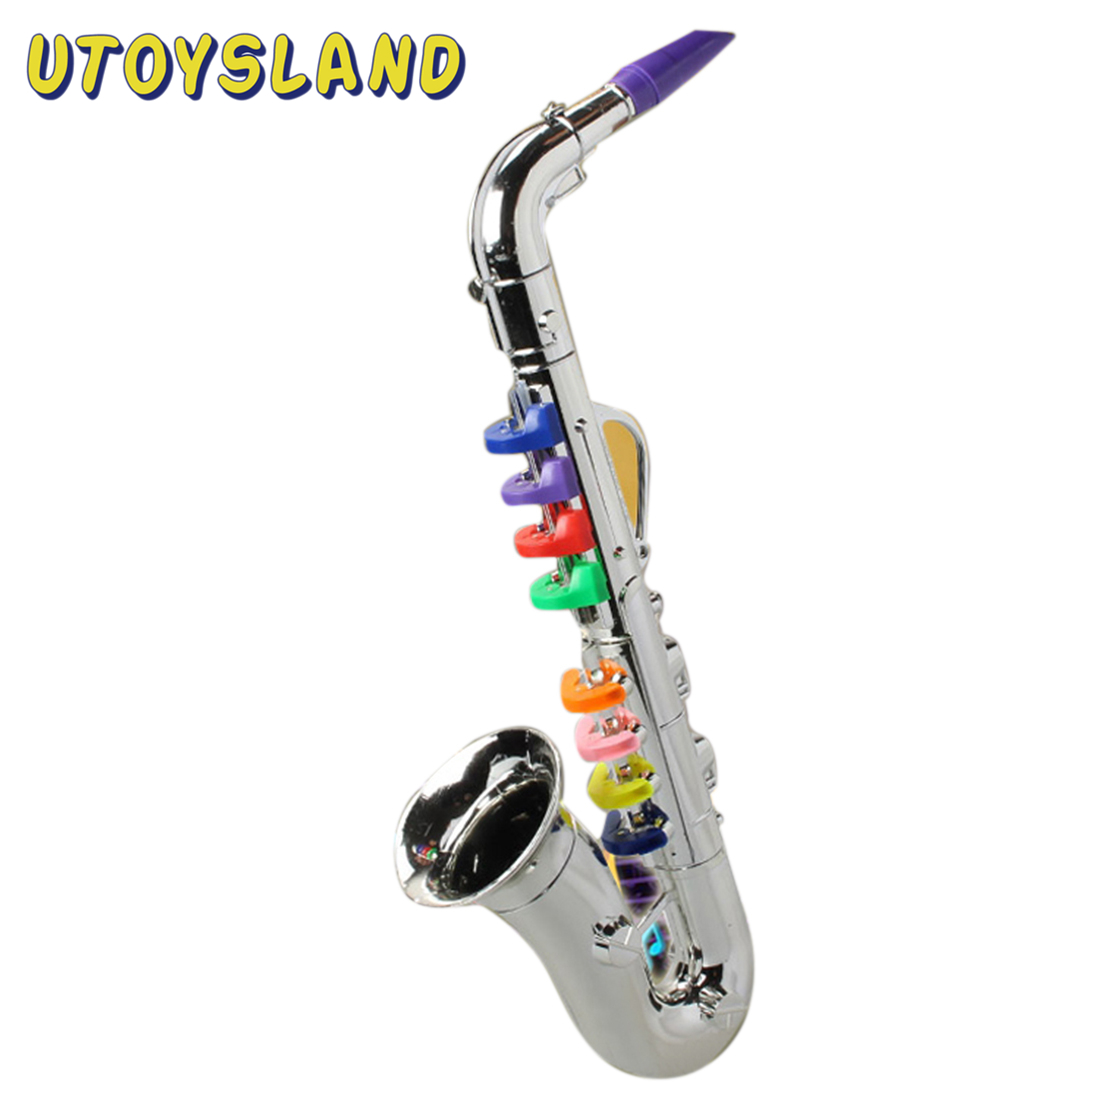 Children Simulation 8 Tones Saxophone Trumpet Early Educational Musical Toy Kids Toys Party Props For Birthday - Silver Golden